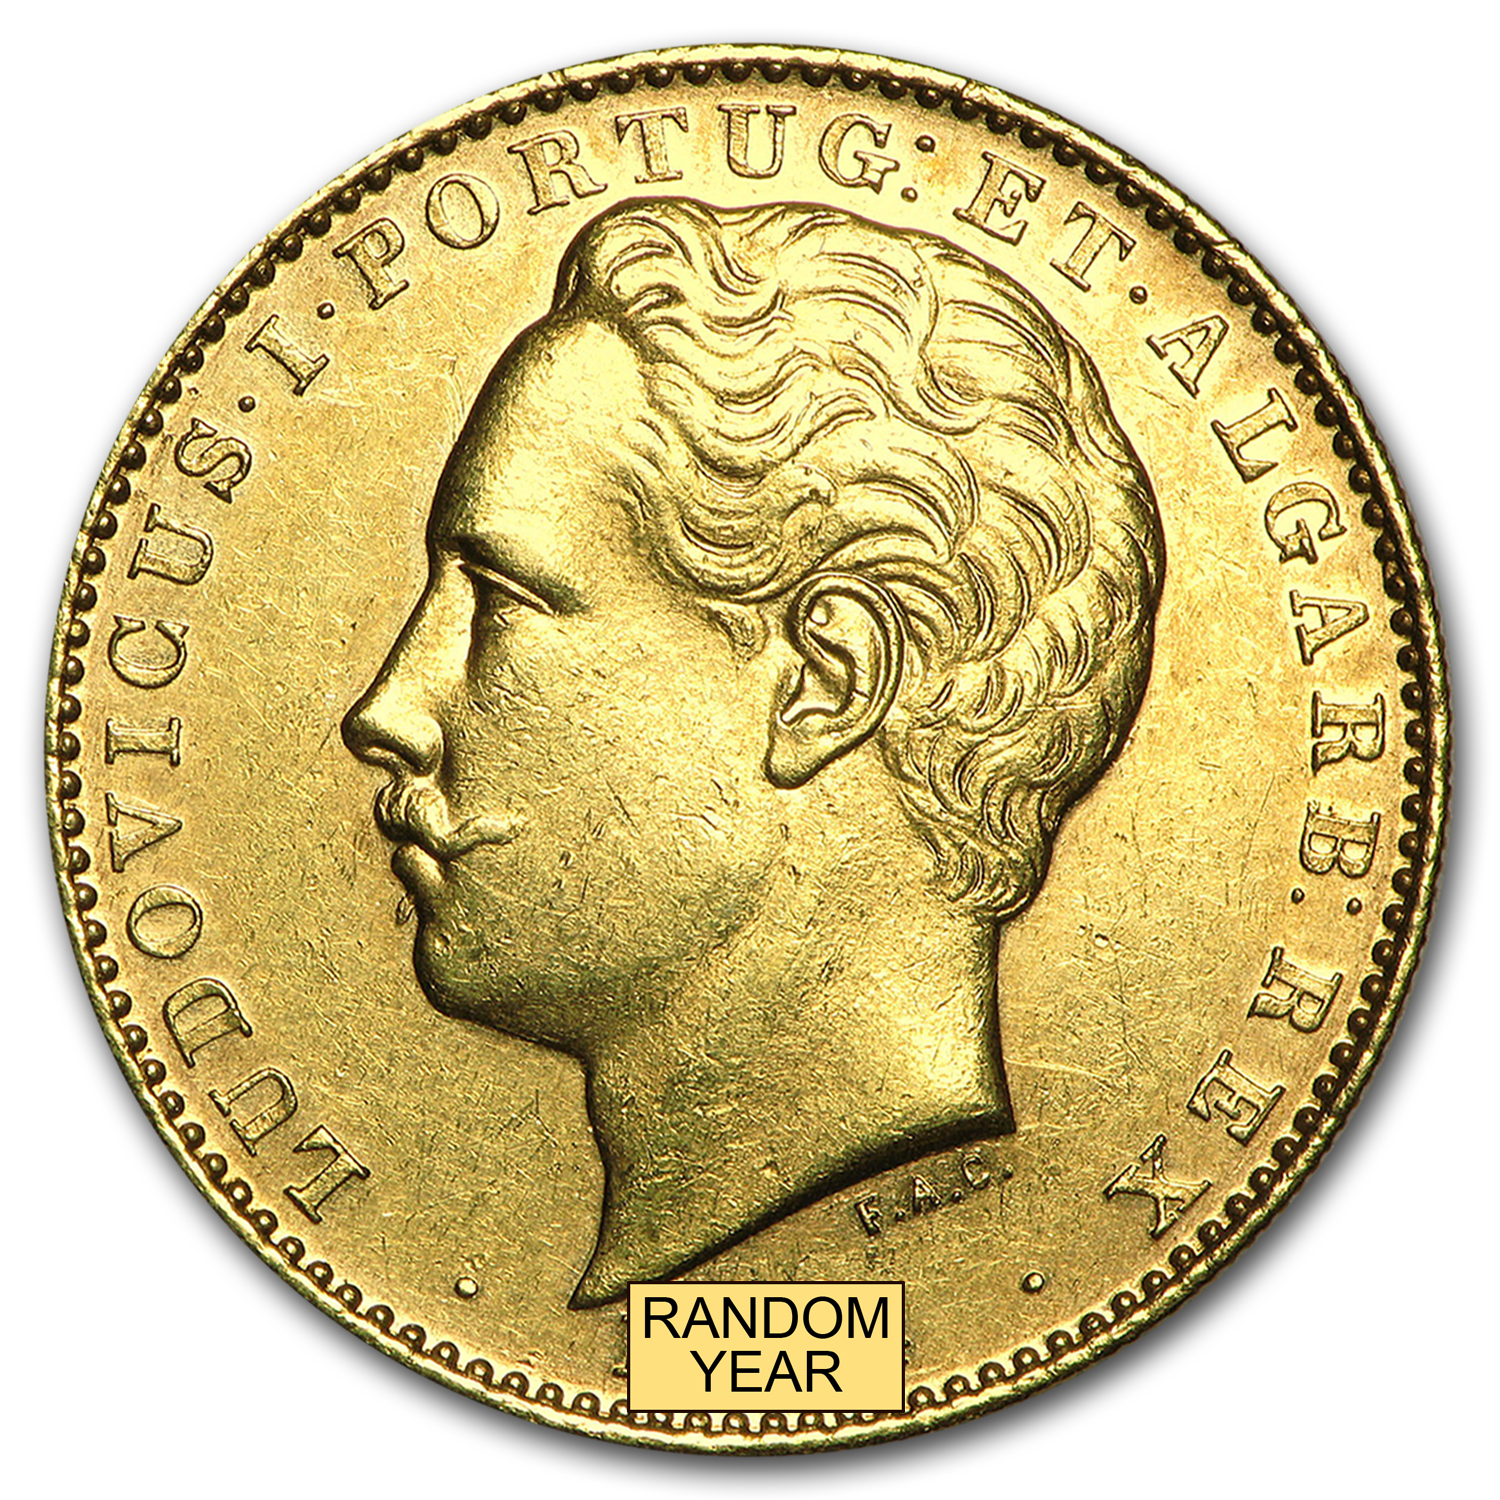 1878-1889 Portugal Gold 10,000 Reis King Luiz I Avg Circ